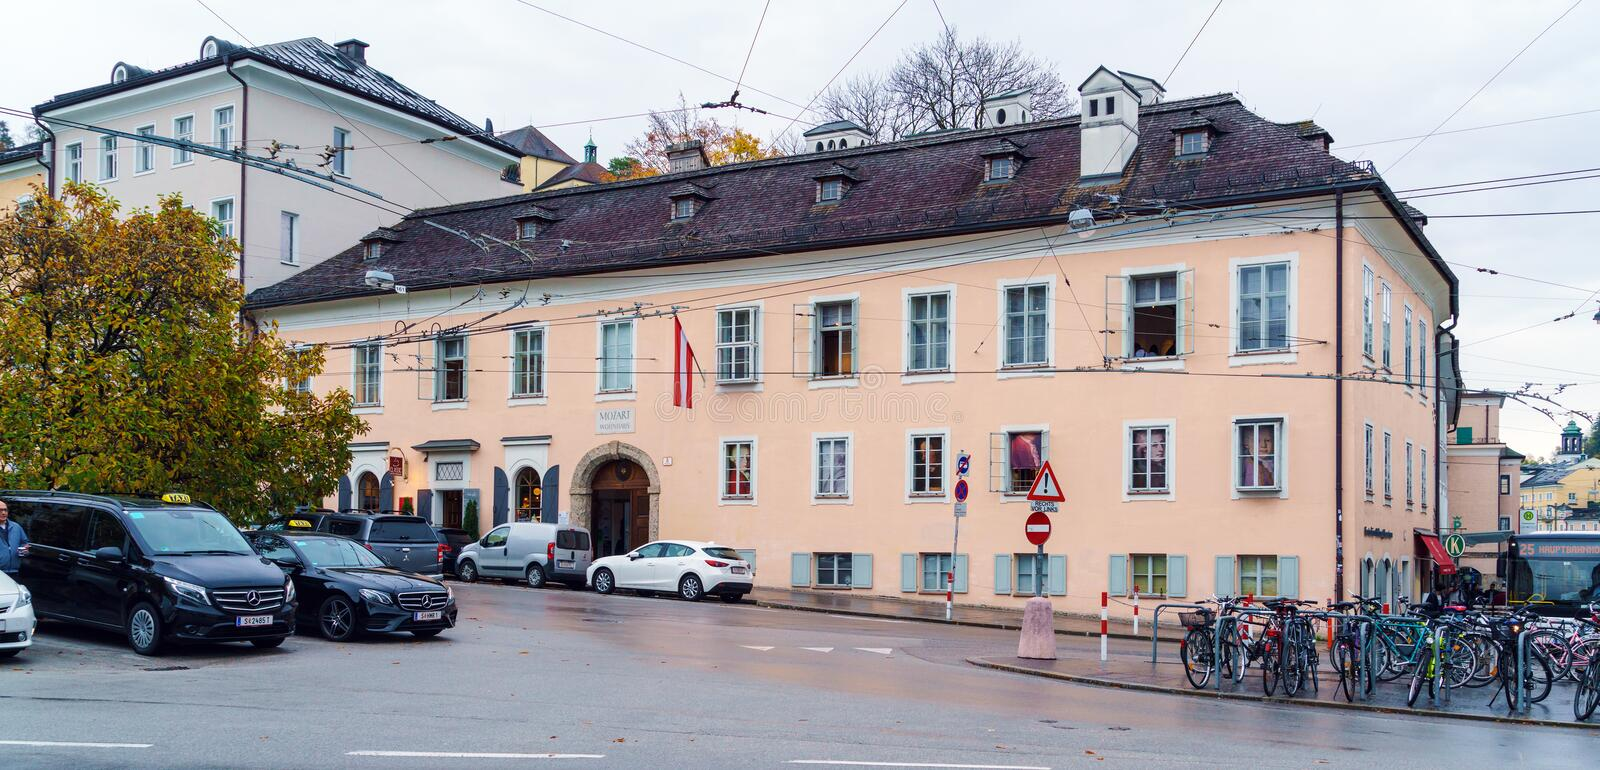 The house where the composer Mozart lived, Salzburg, Austria royalty free stock image